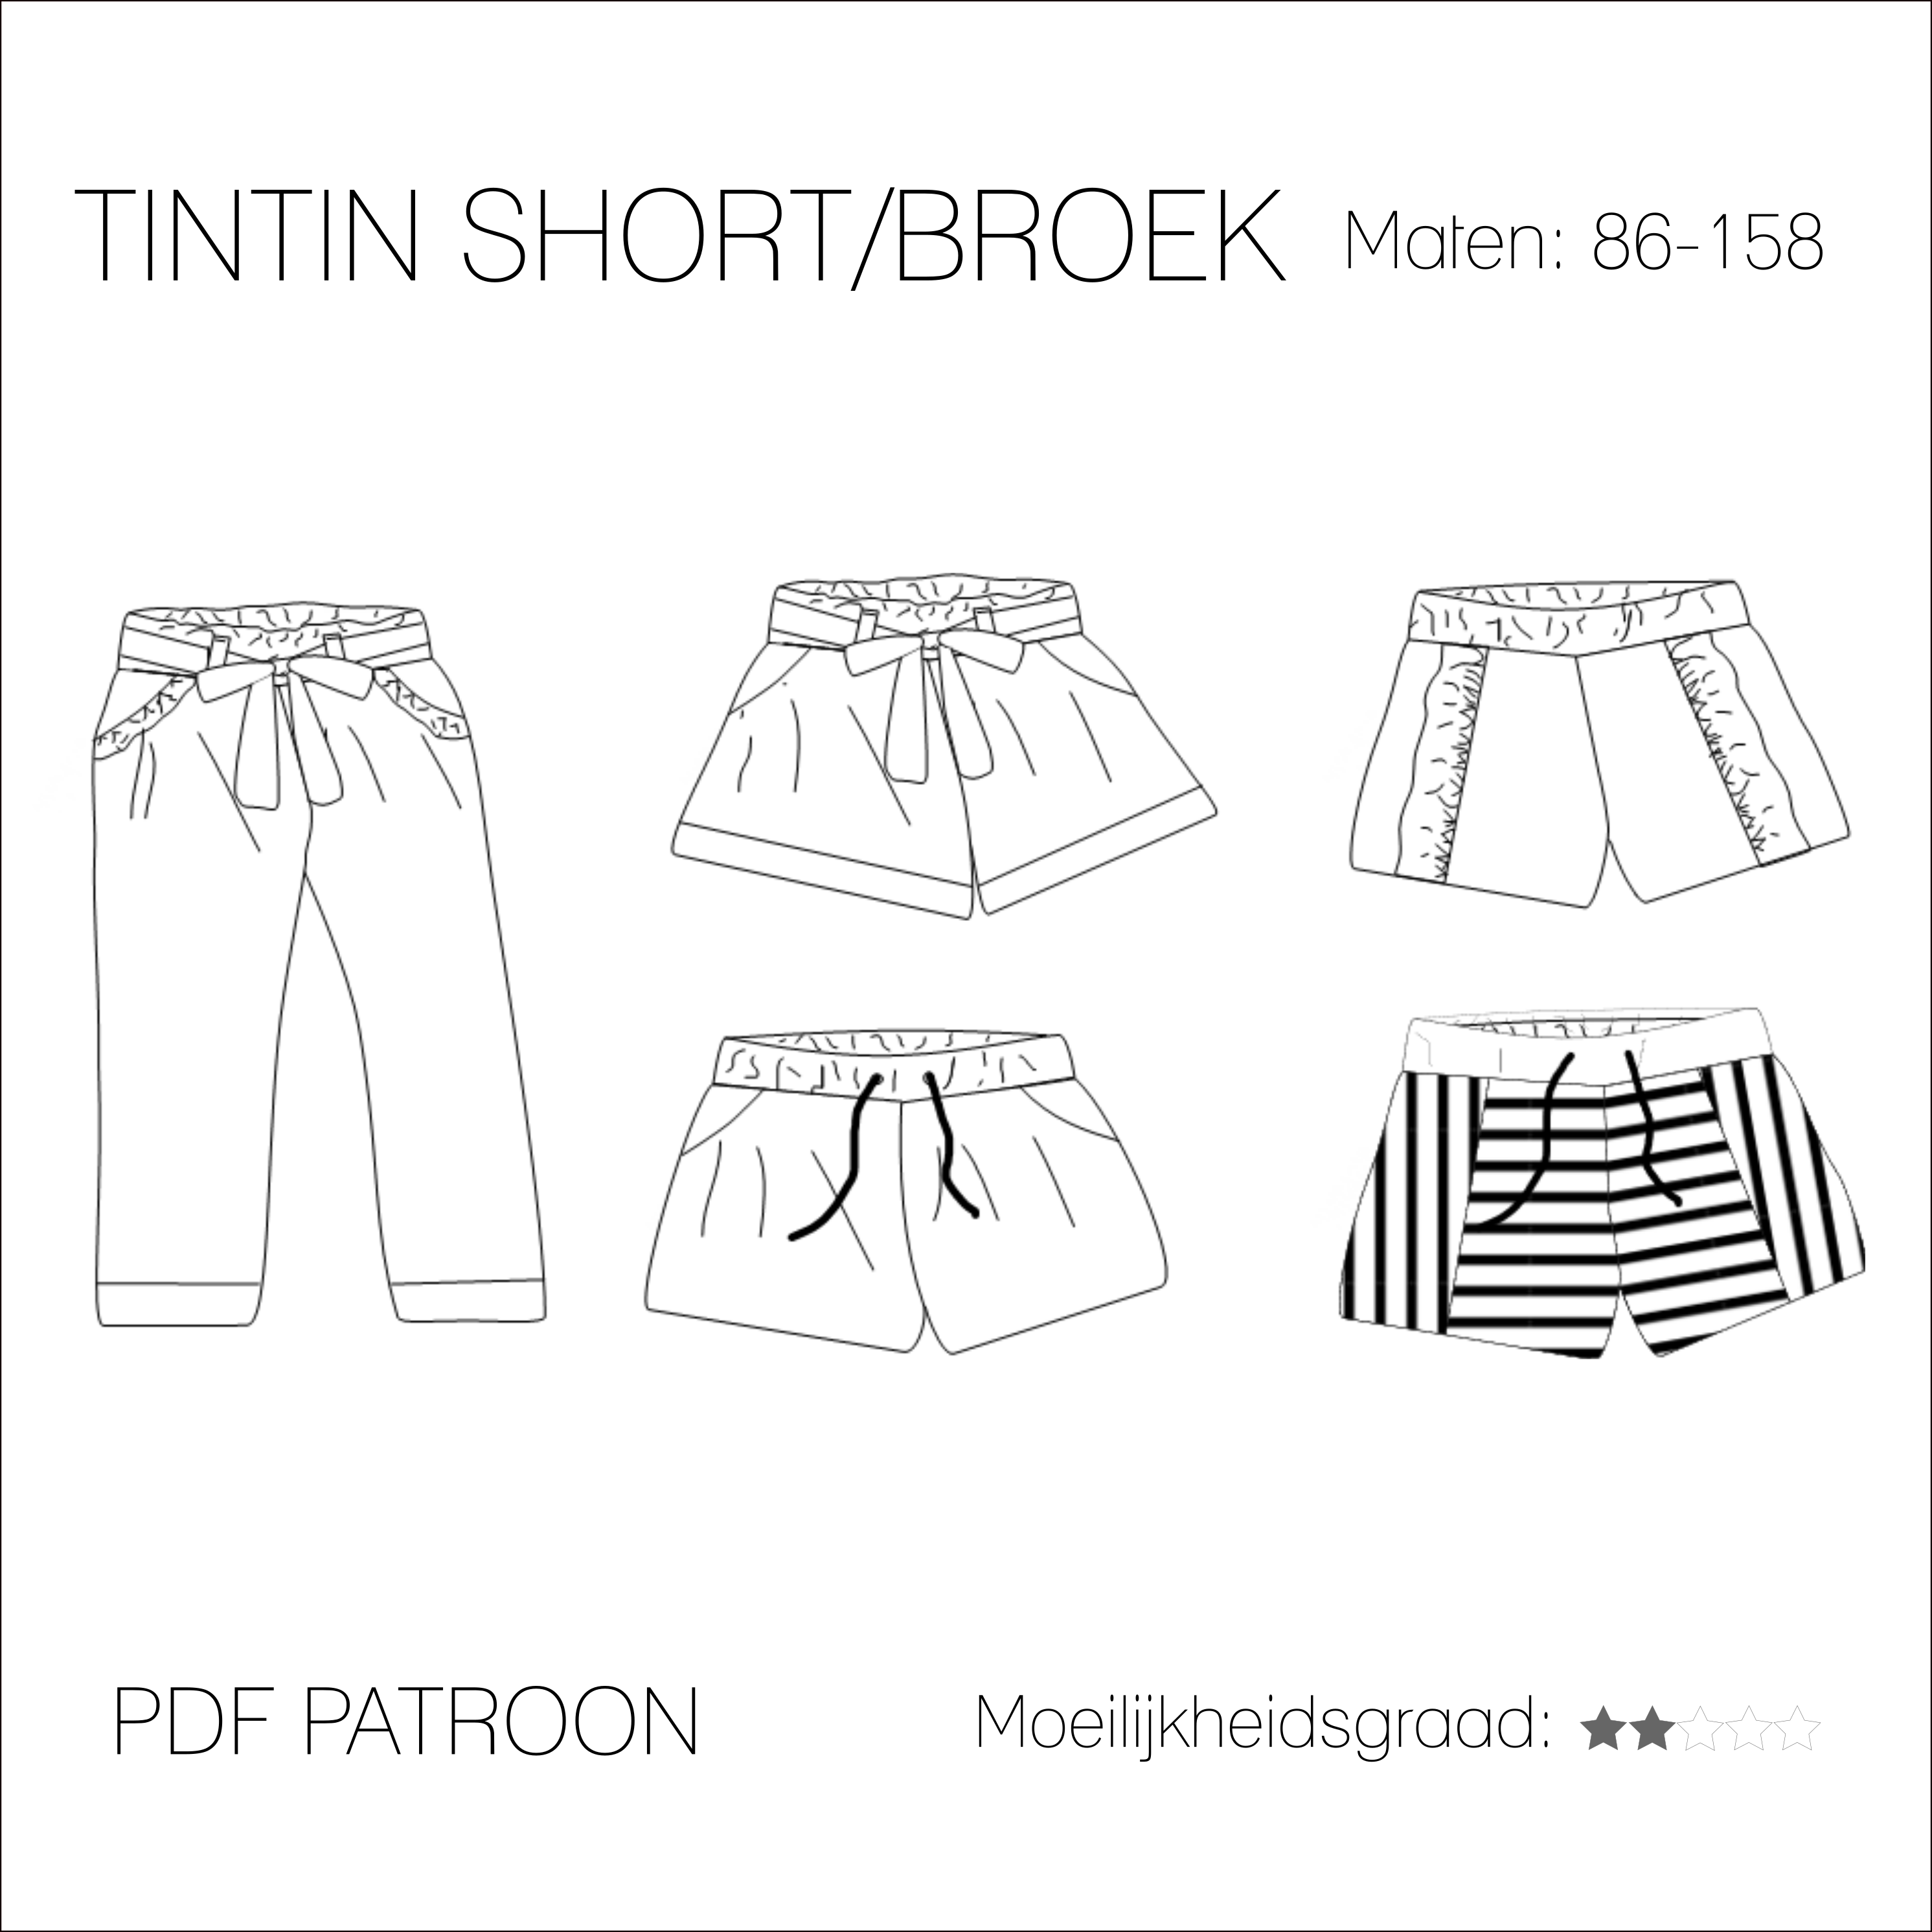 f6b1c7bef392a7 Tintin short broek - PDF patroon - Iris May